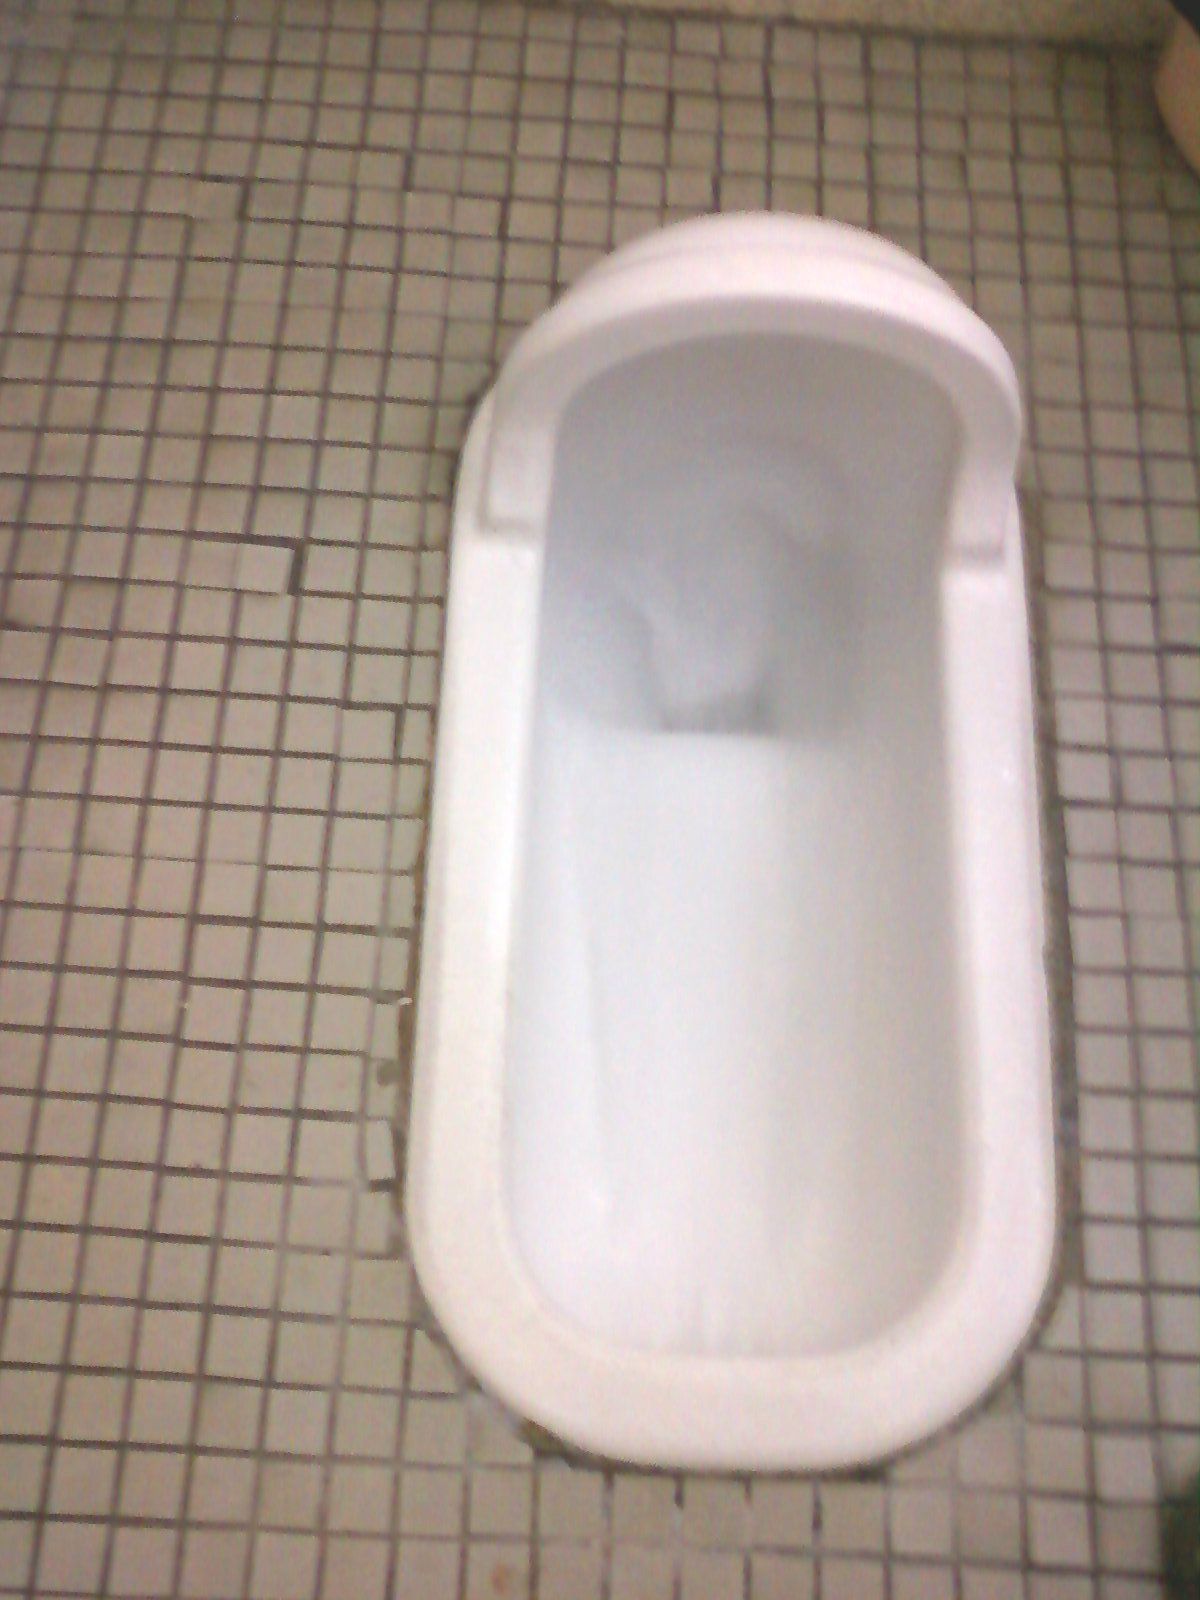 An Insider's Look at Japan: The Squat Toilet